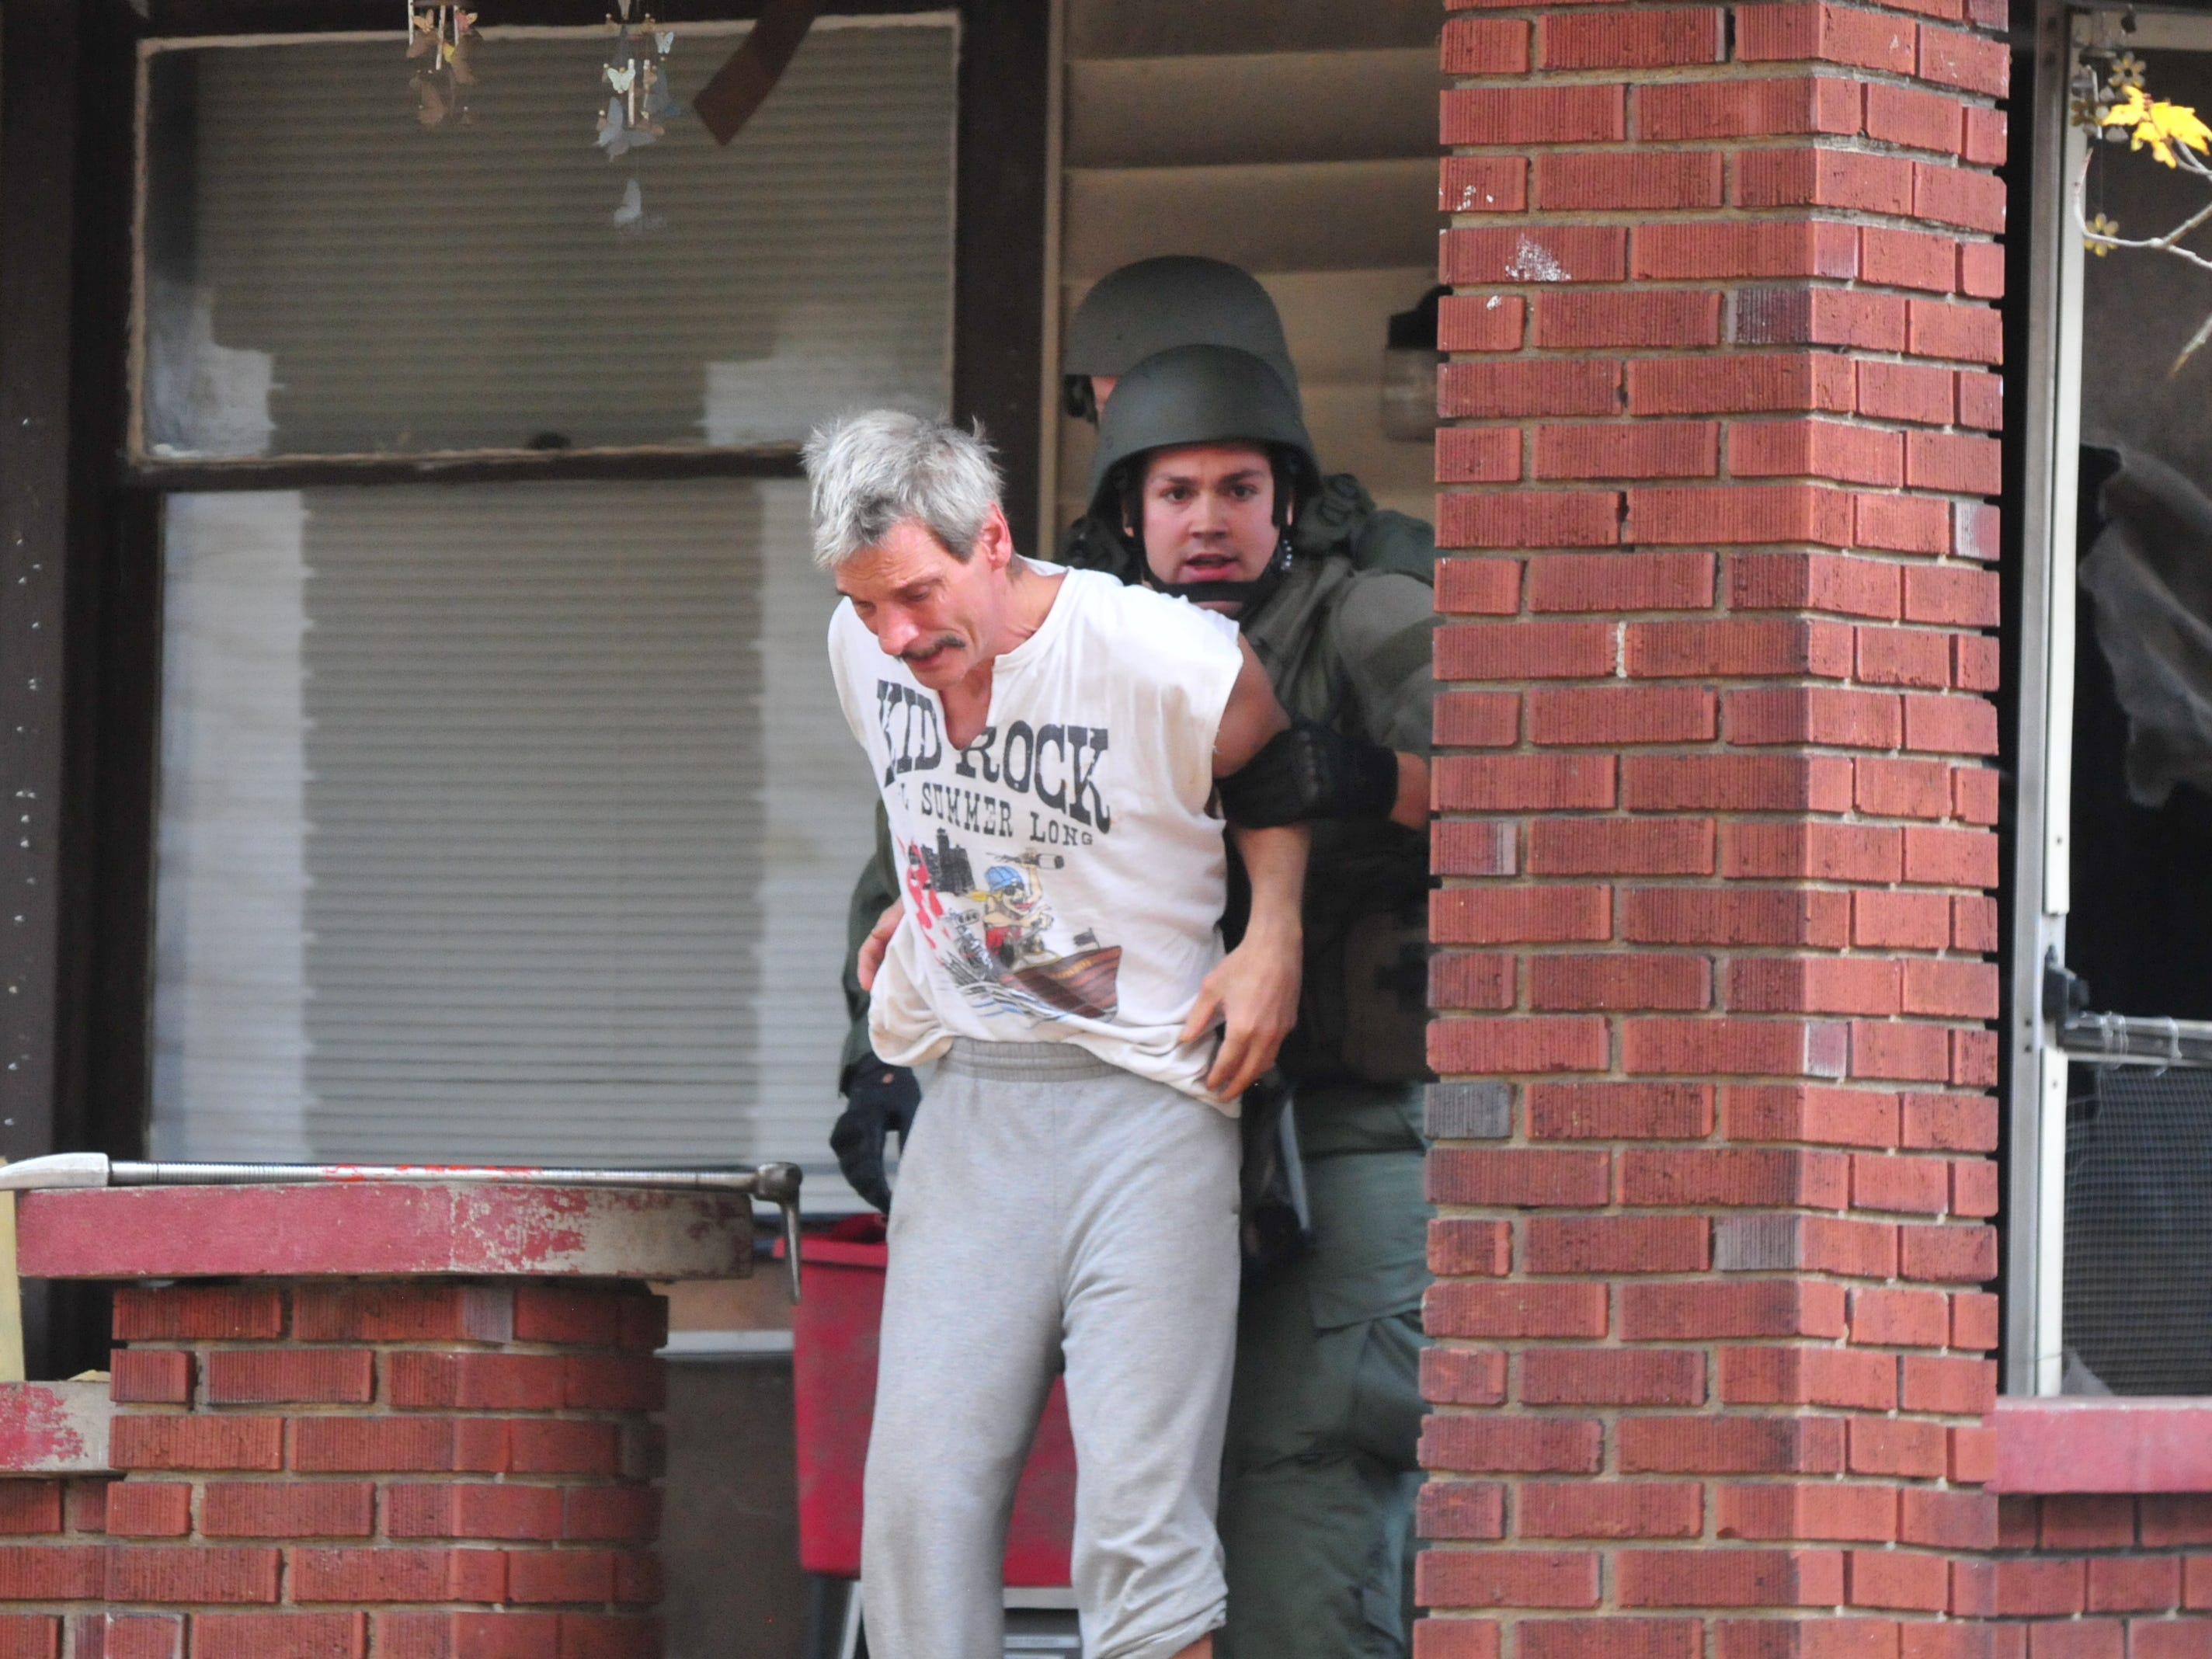 James Hamilton is led by SWAT team members from the house at 219 N. 16th St. on Monday.